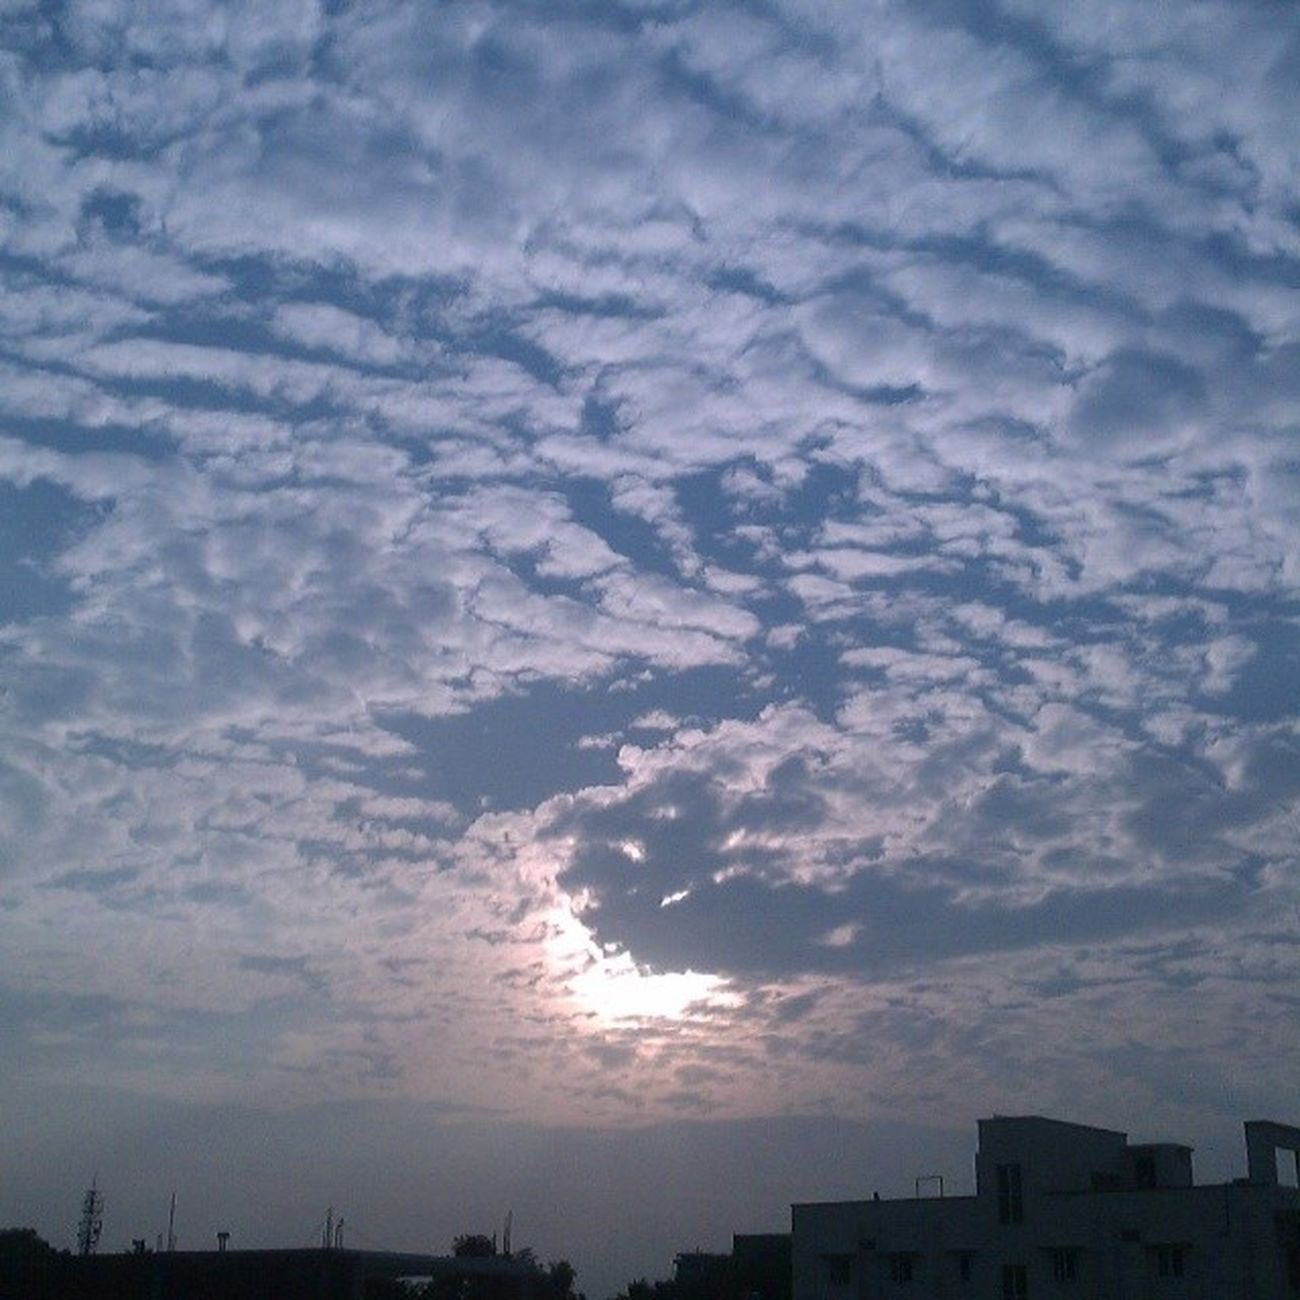 Nofilter Clouds Cloud_pattern Sunrise randomclick